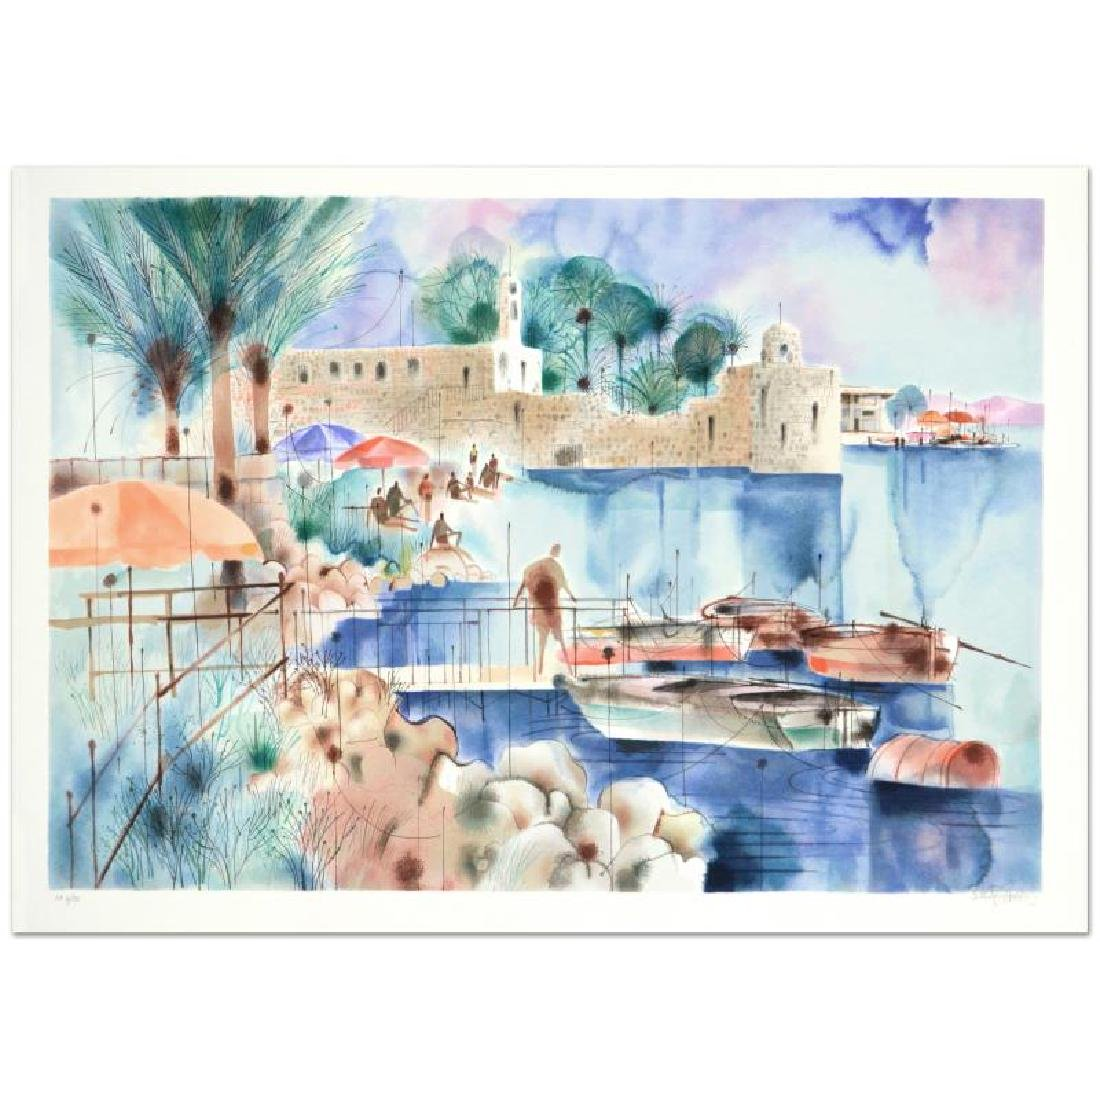 """Sea of Galilee"" Limited Edition Serigraph by Shmuel"